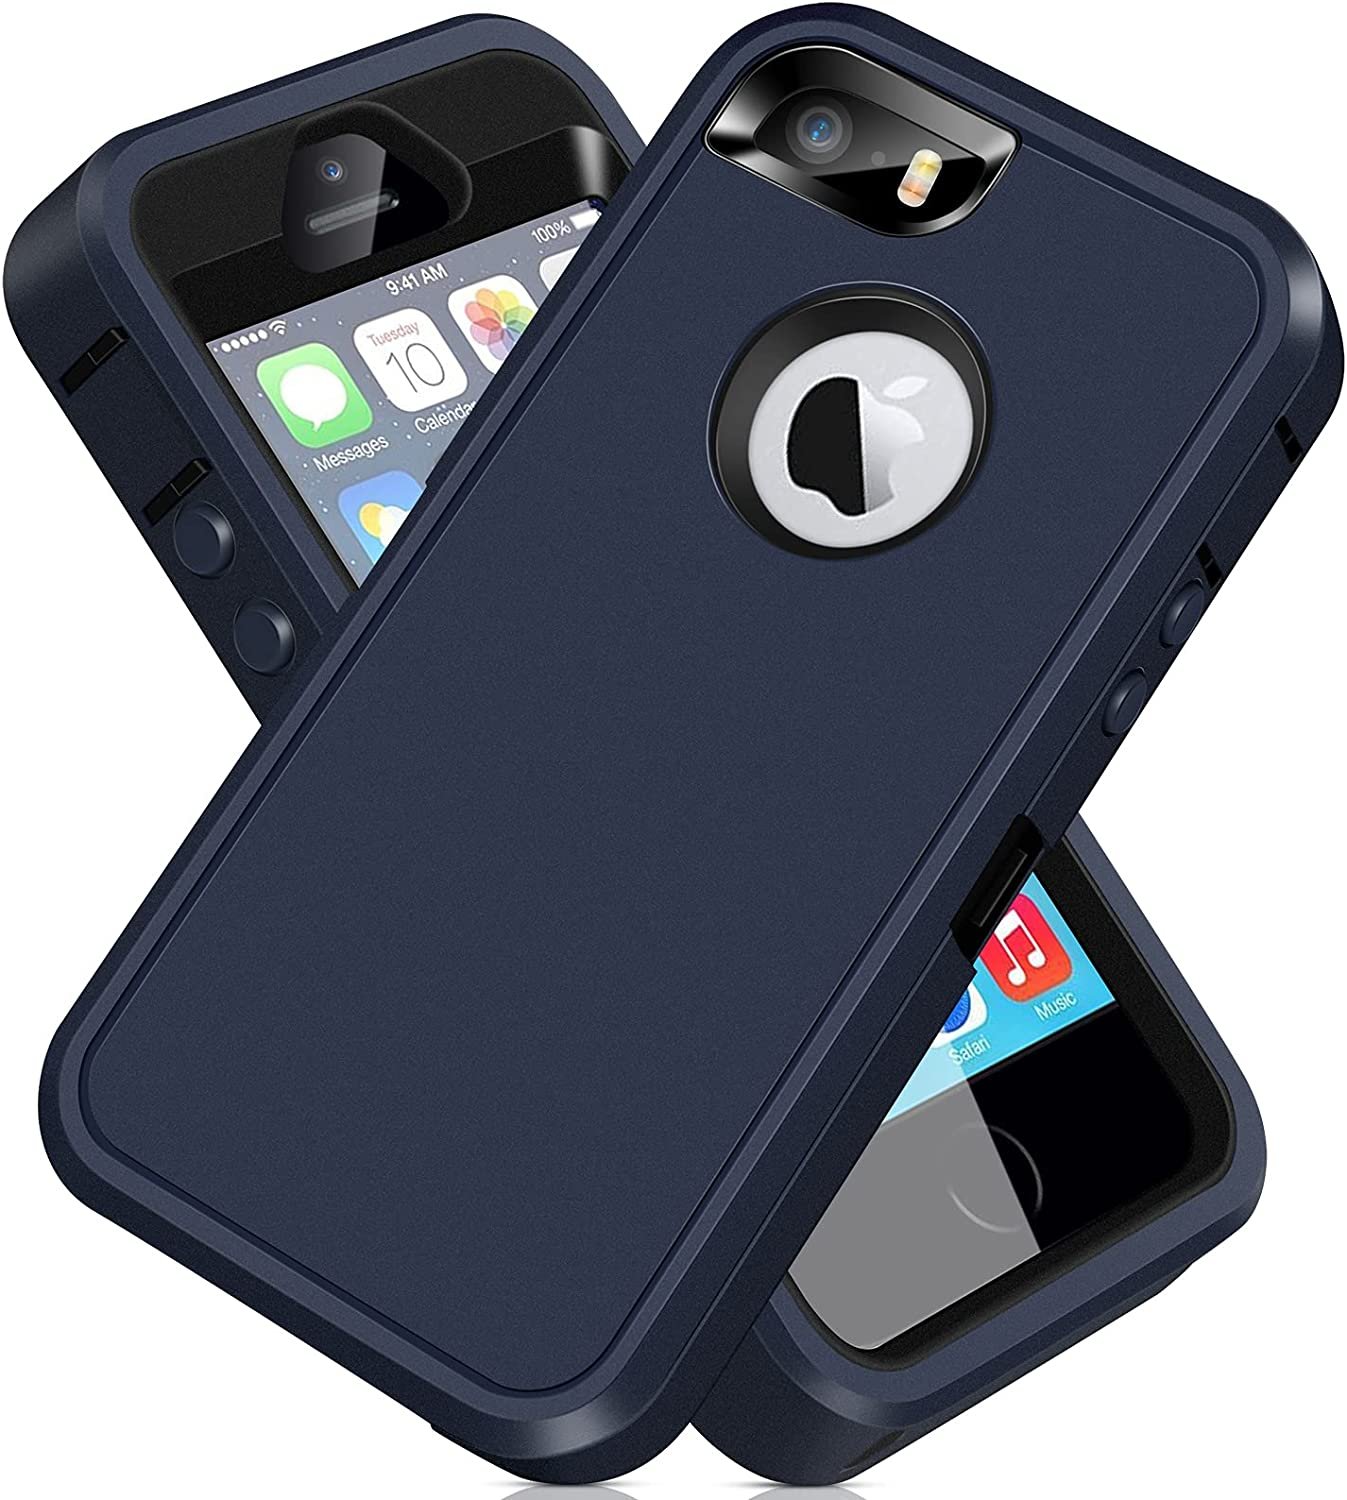 iPhone 5S Case, iPhone SE 2016 Case ACAGET iPhone 5 Case Heavy Duty Protective Armor Shock-Absorbing Dual Layer Rubber TPU + PC Cover Non-Slip Bumper Phone Cases for iPhone 5S/SE/5 (Dark Blue/Black)